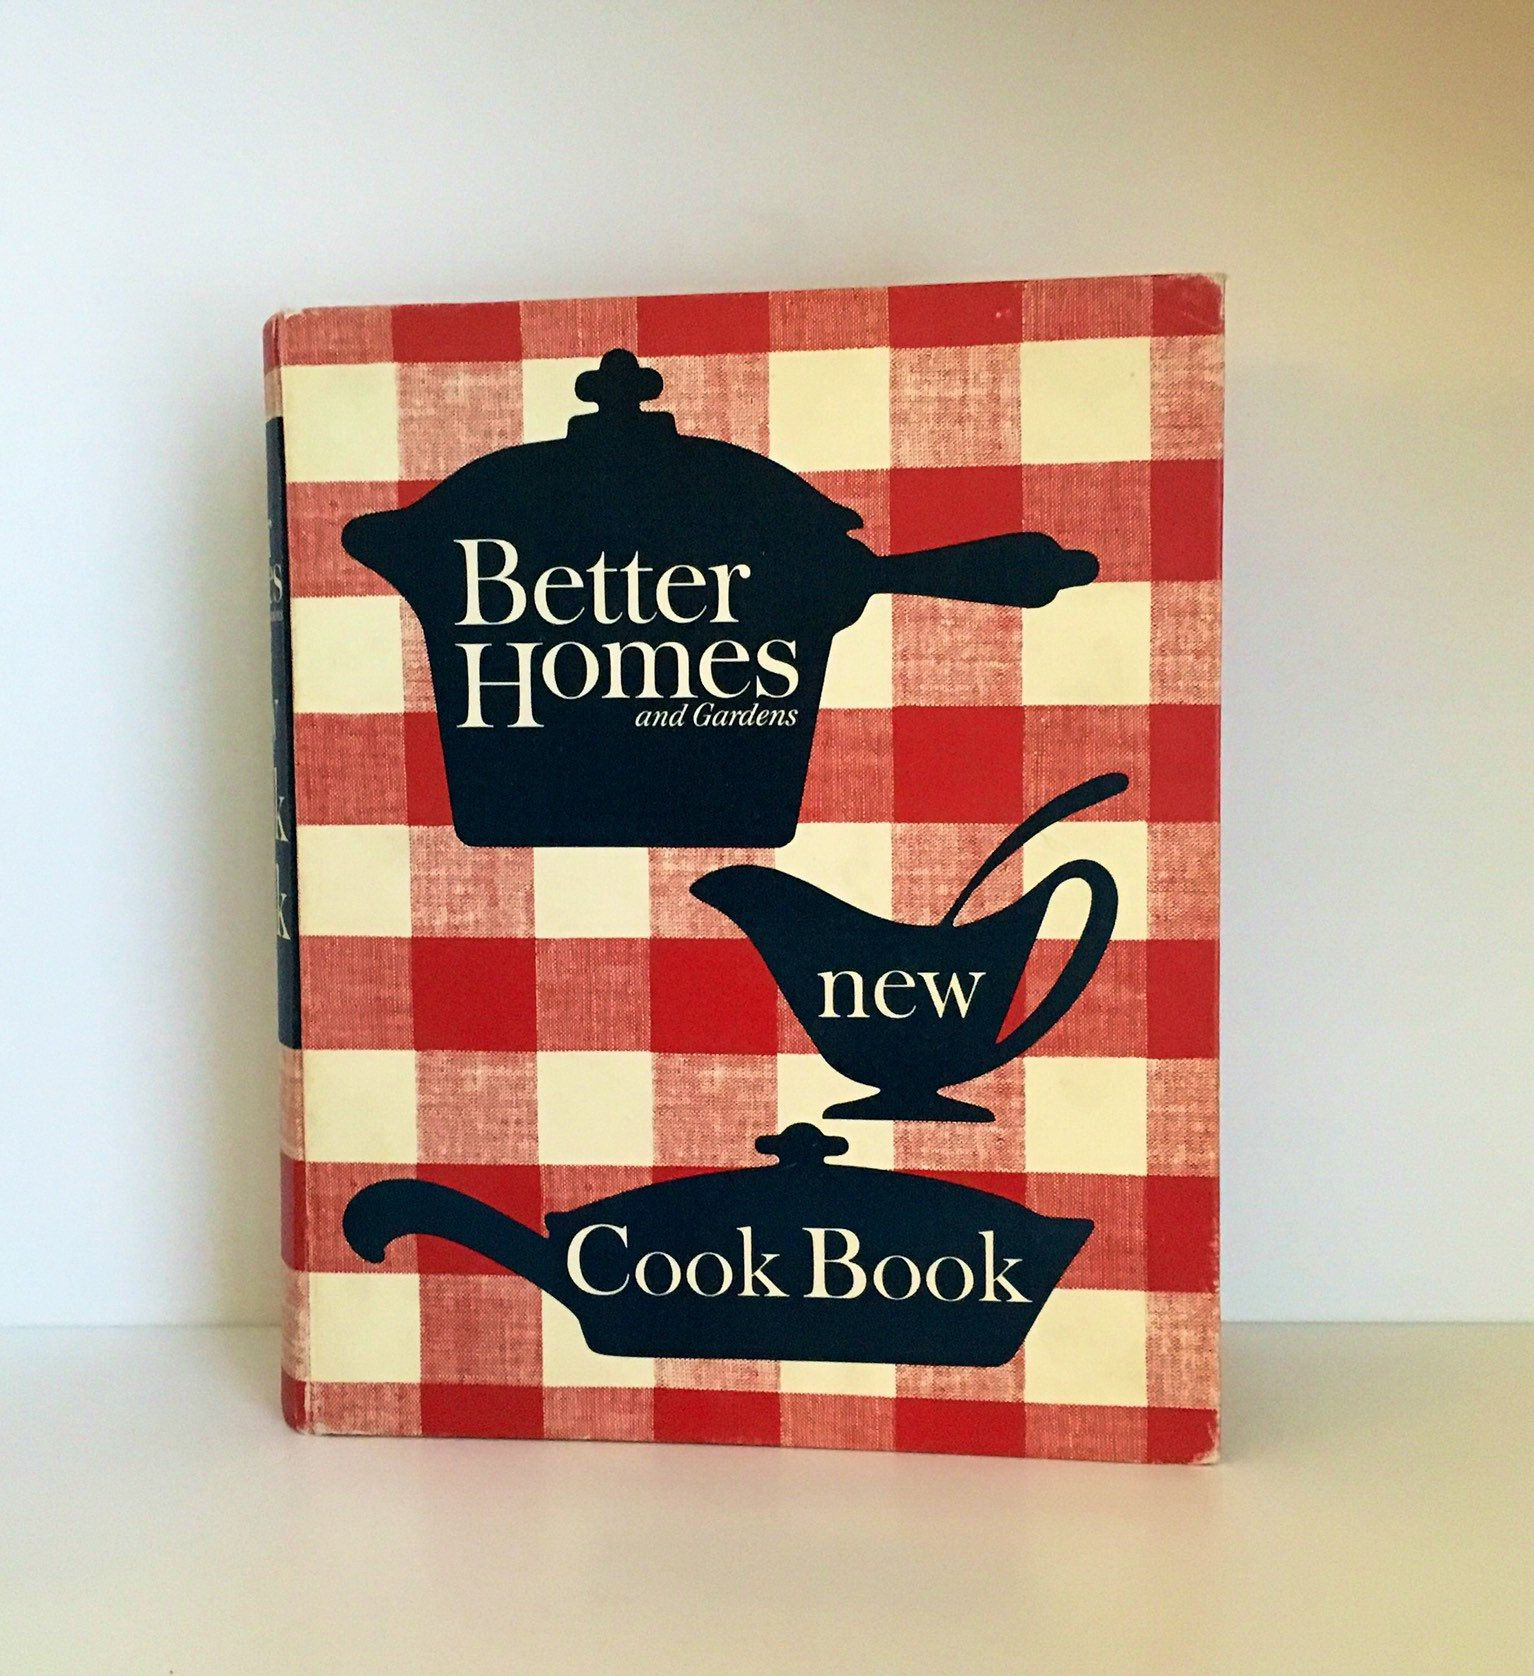 139774392cbe5b492f2ab5c7c6f20af9 - Better Homes & Gardens New Cook Book